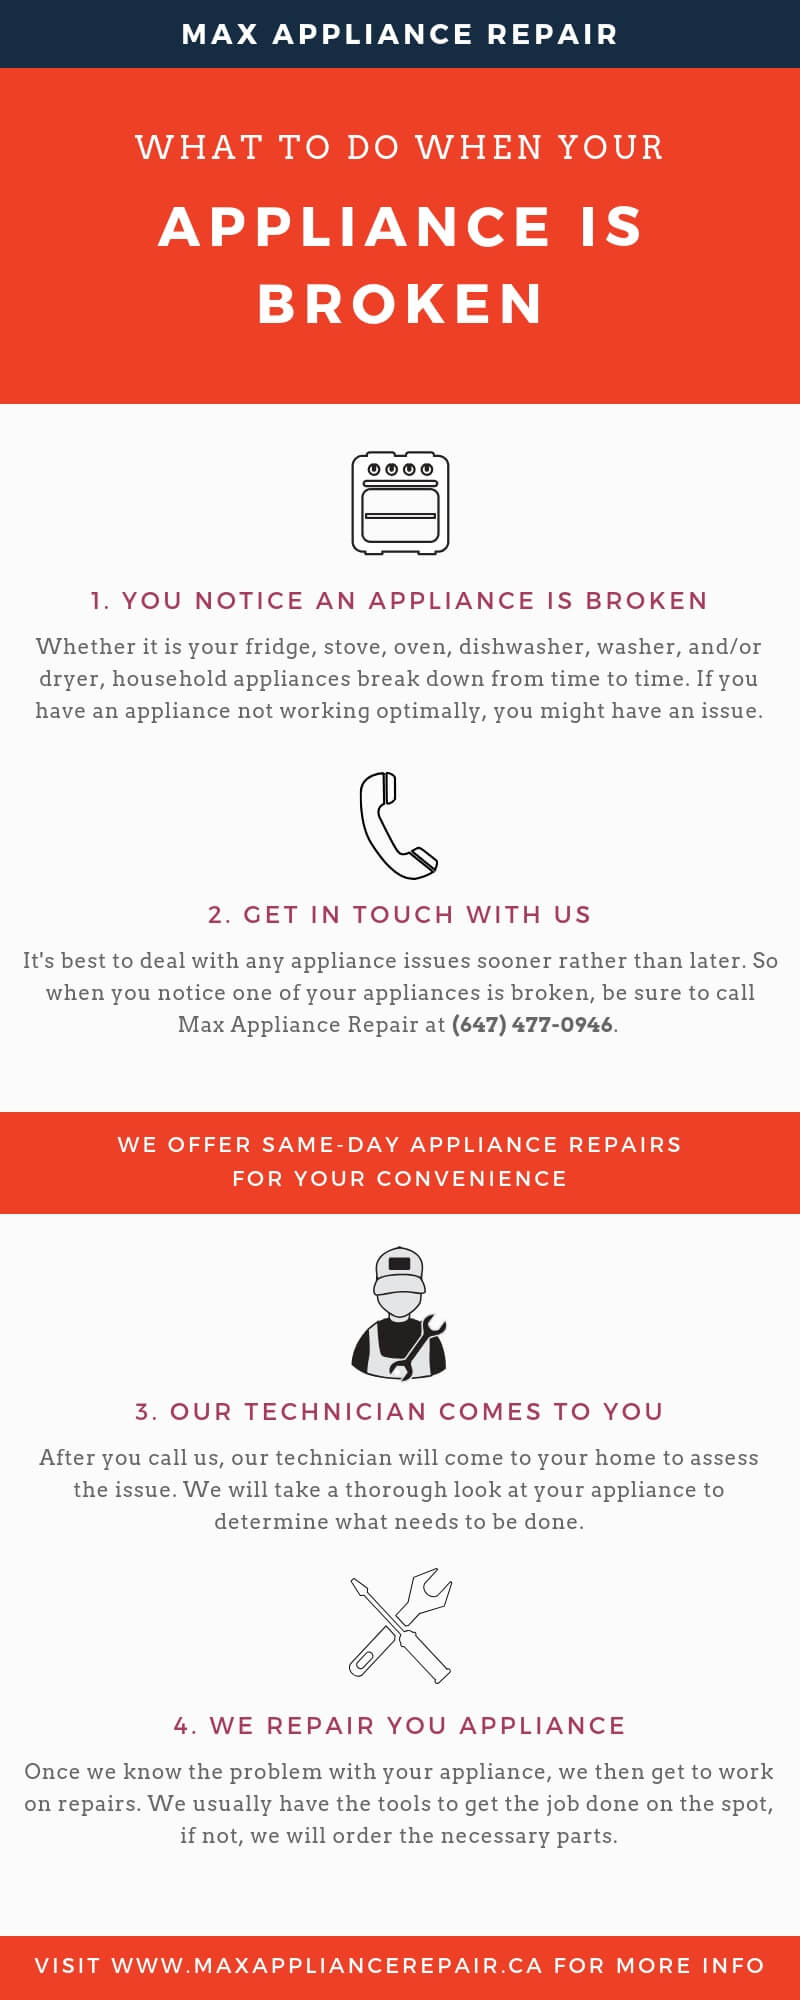 max appliance repair infographic